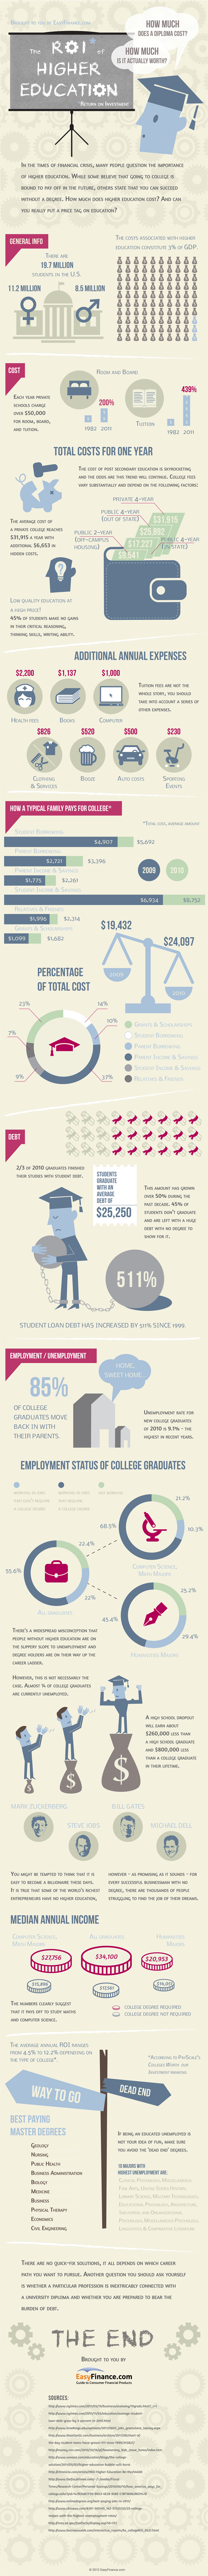 The ROI of Higher Education (Infographic)